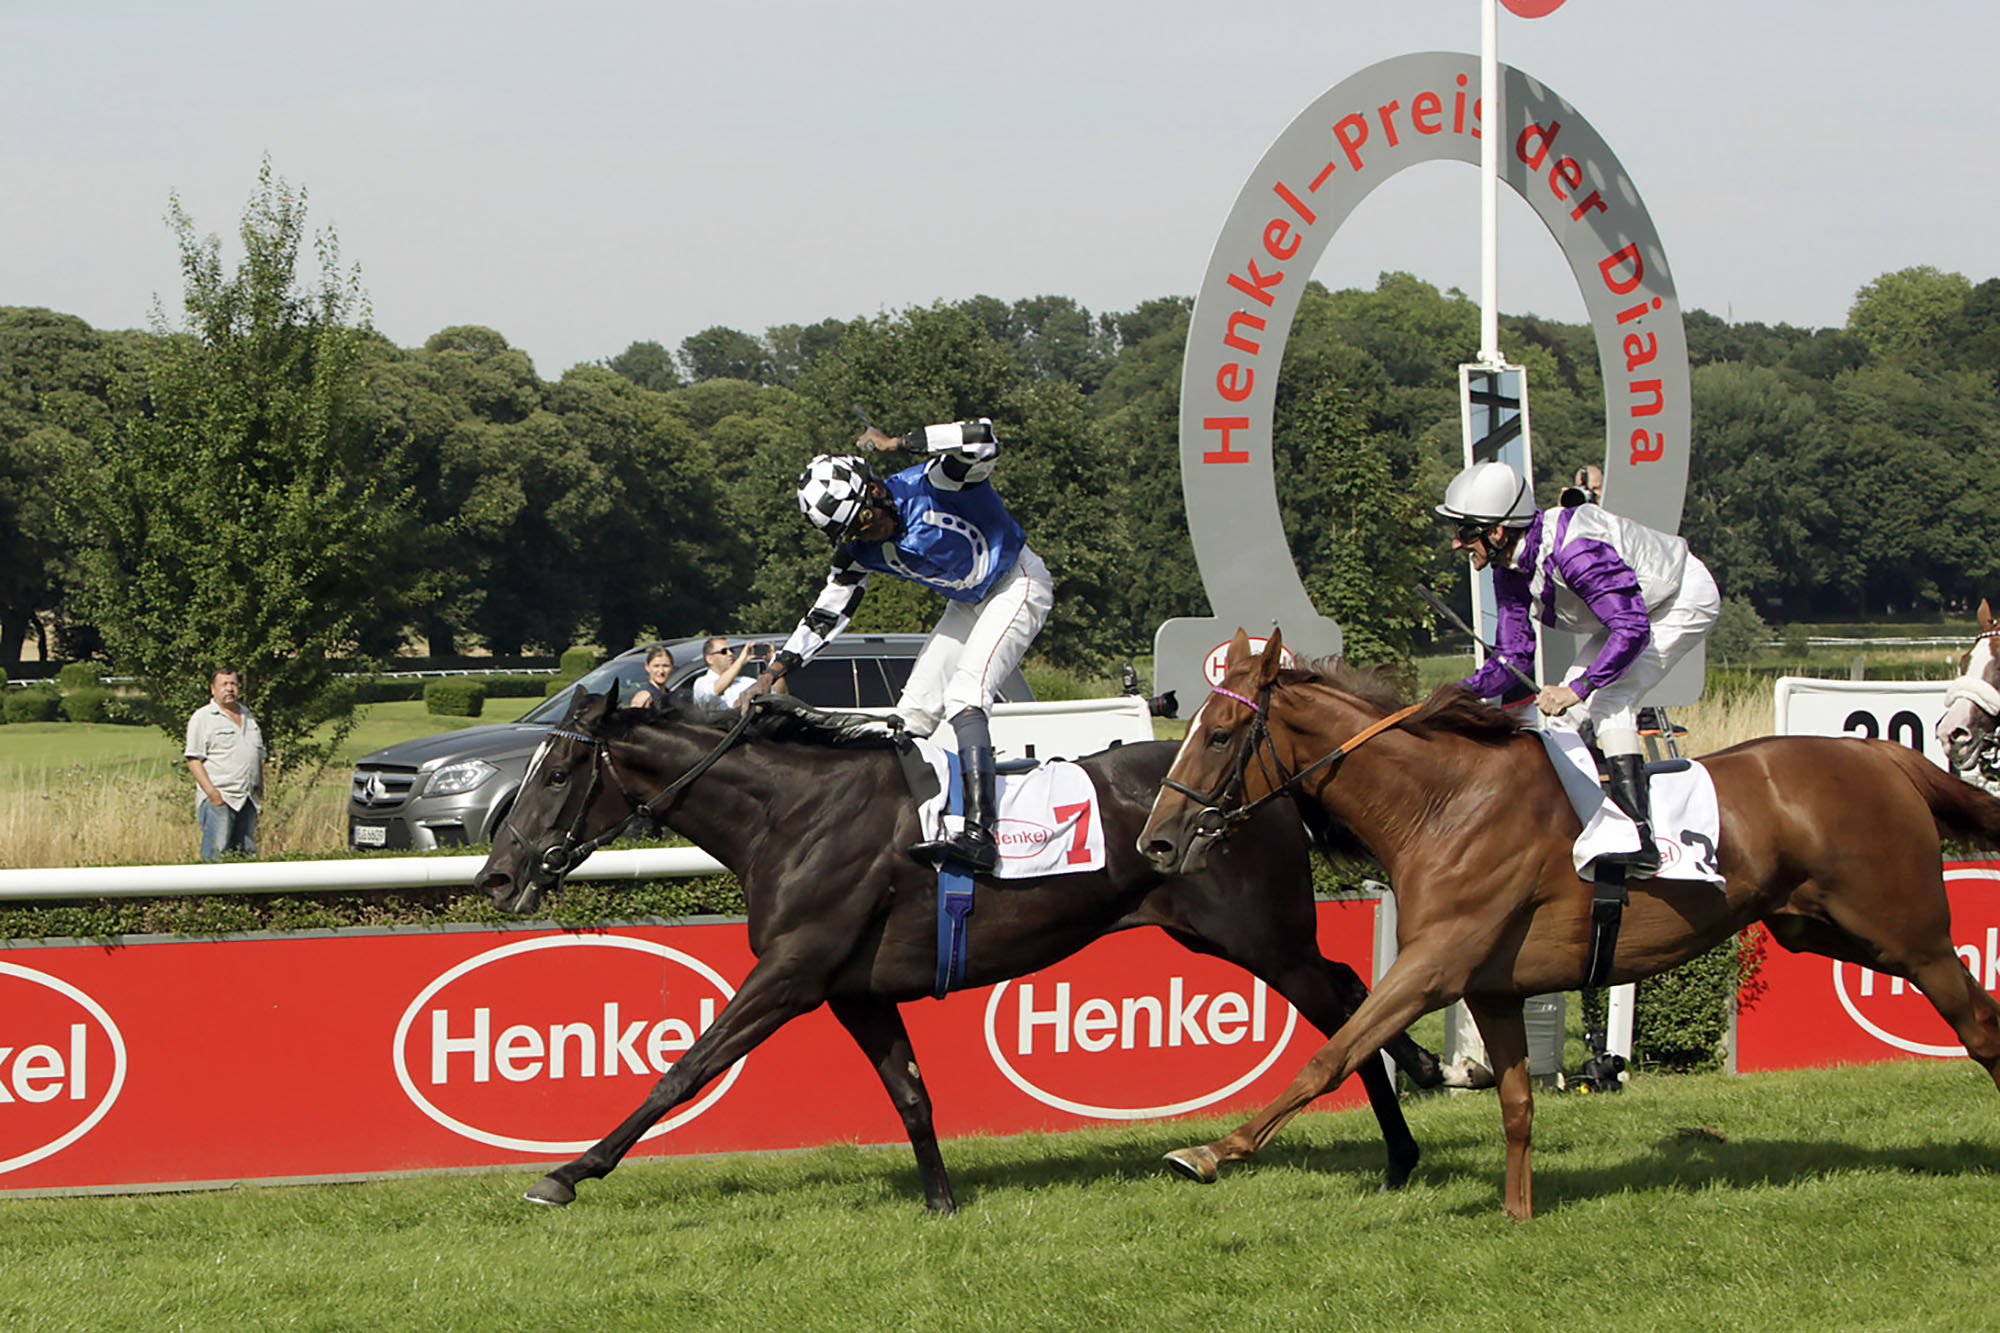 Turfdonna and jockey Eduardo Pedroza at the finish of the feature race at the Henkel award of Diana. (Foto: Henkel Press & Media Relations)